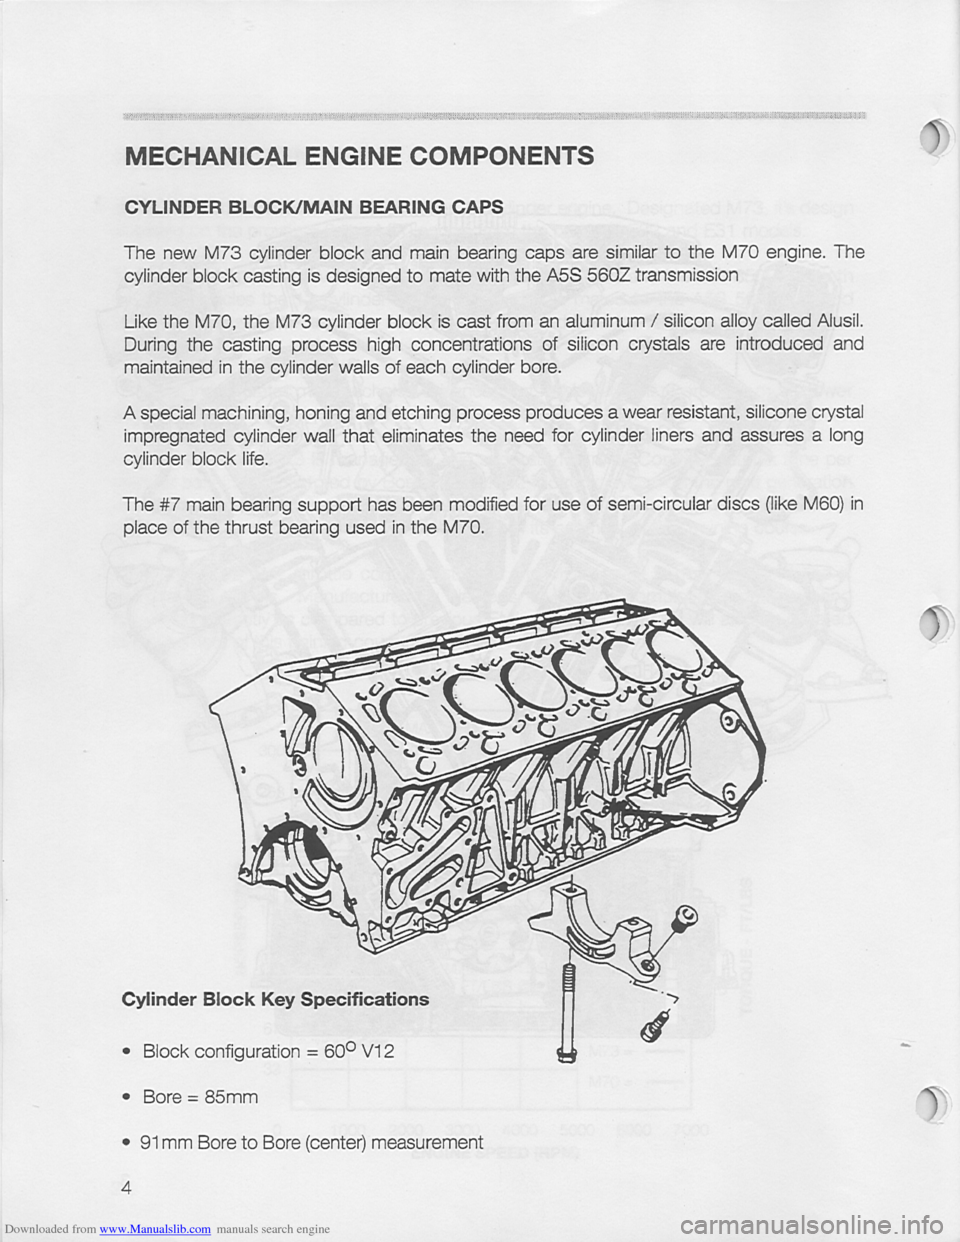 Bmw 850i 1994 E31 M73 Training Reference Manual V12 Engine Diagram